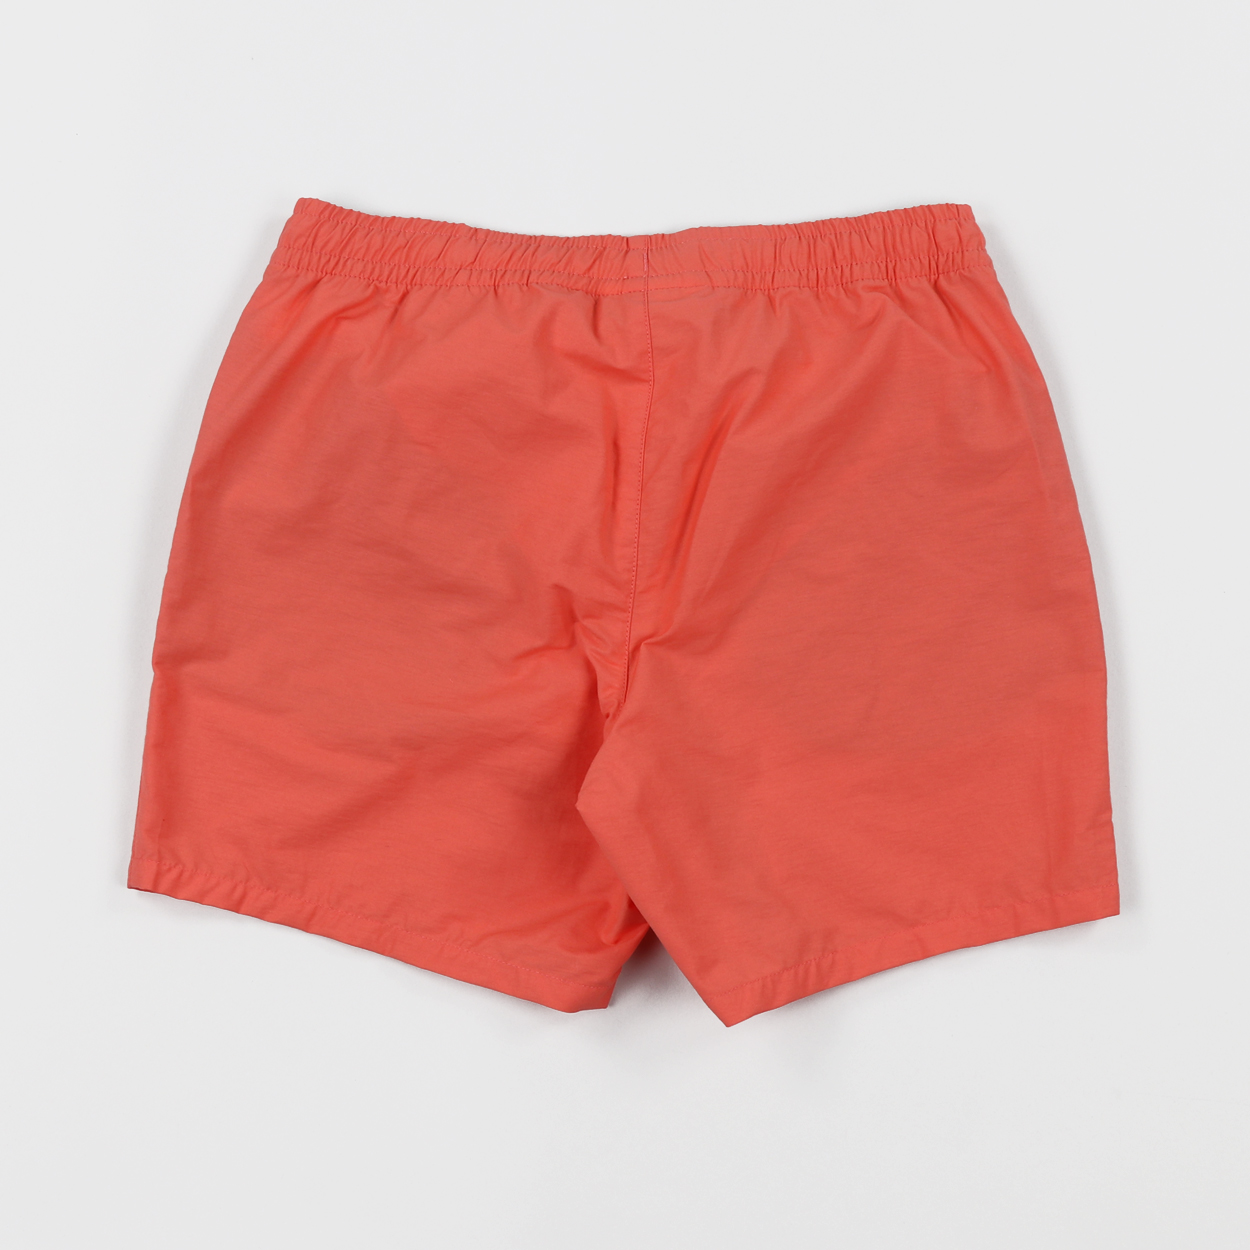 8f53141b29 A pair of swimming trunks from Lacoste made from 77% cotton and 23%  polyamide in a lightweight taffeta. It features a mesh lining and an  embroidered logo.